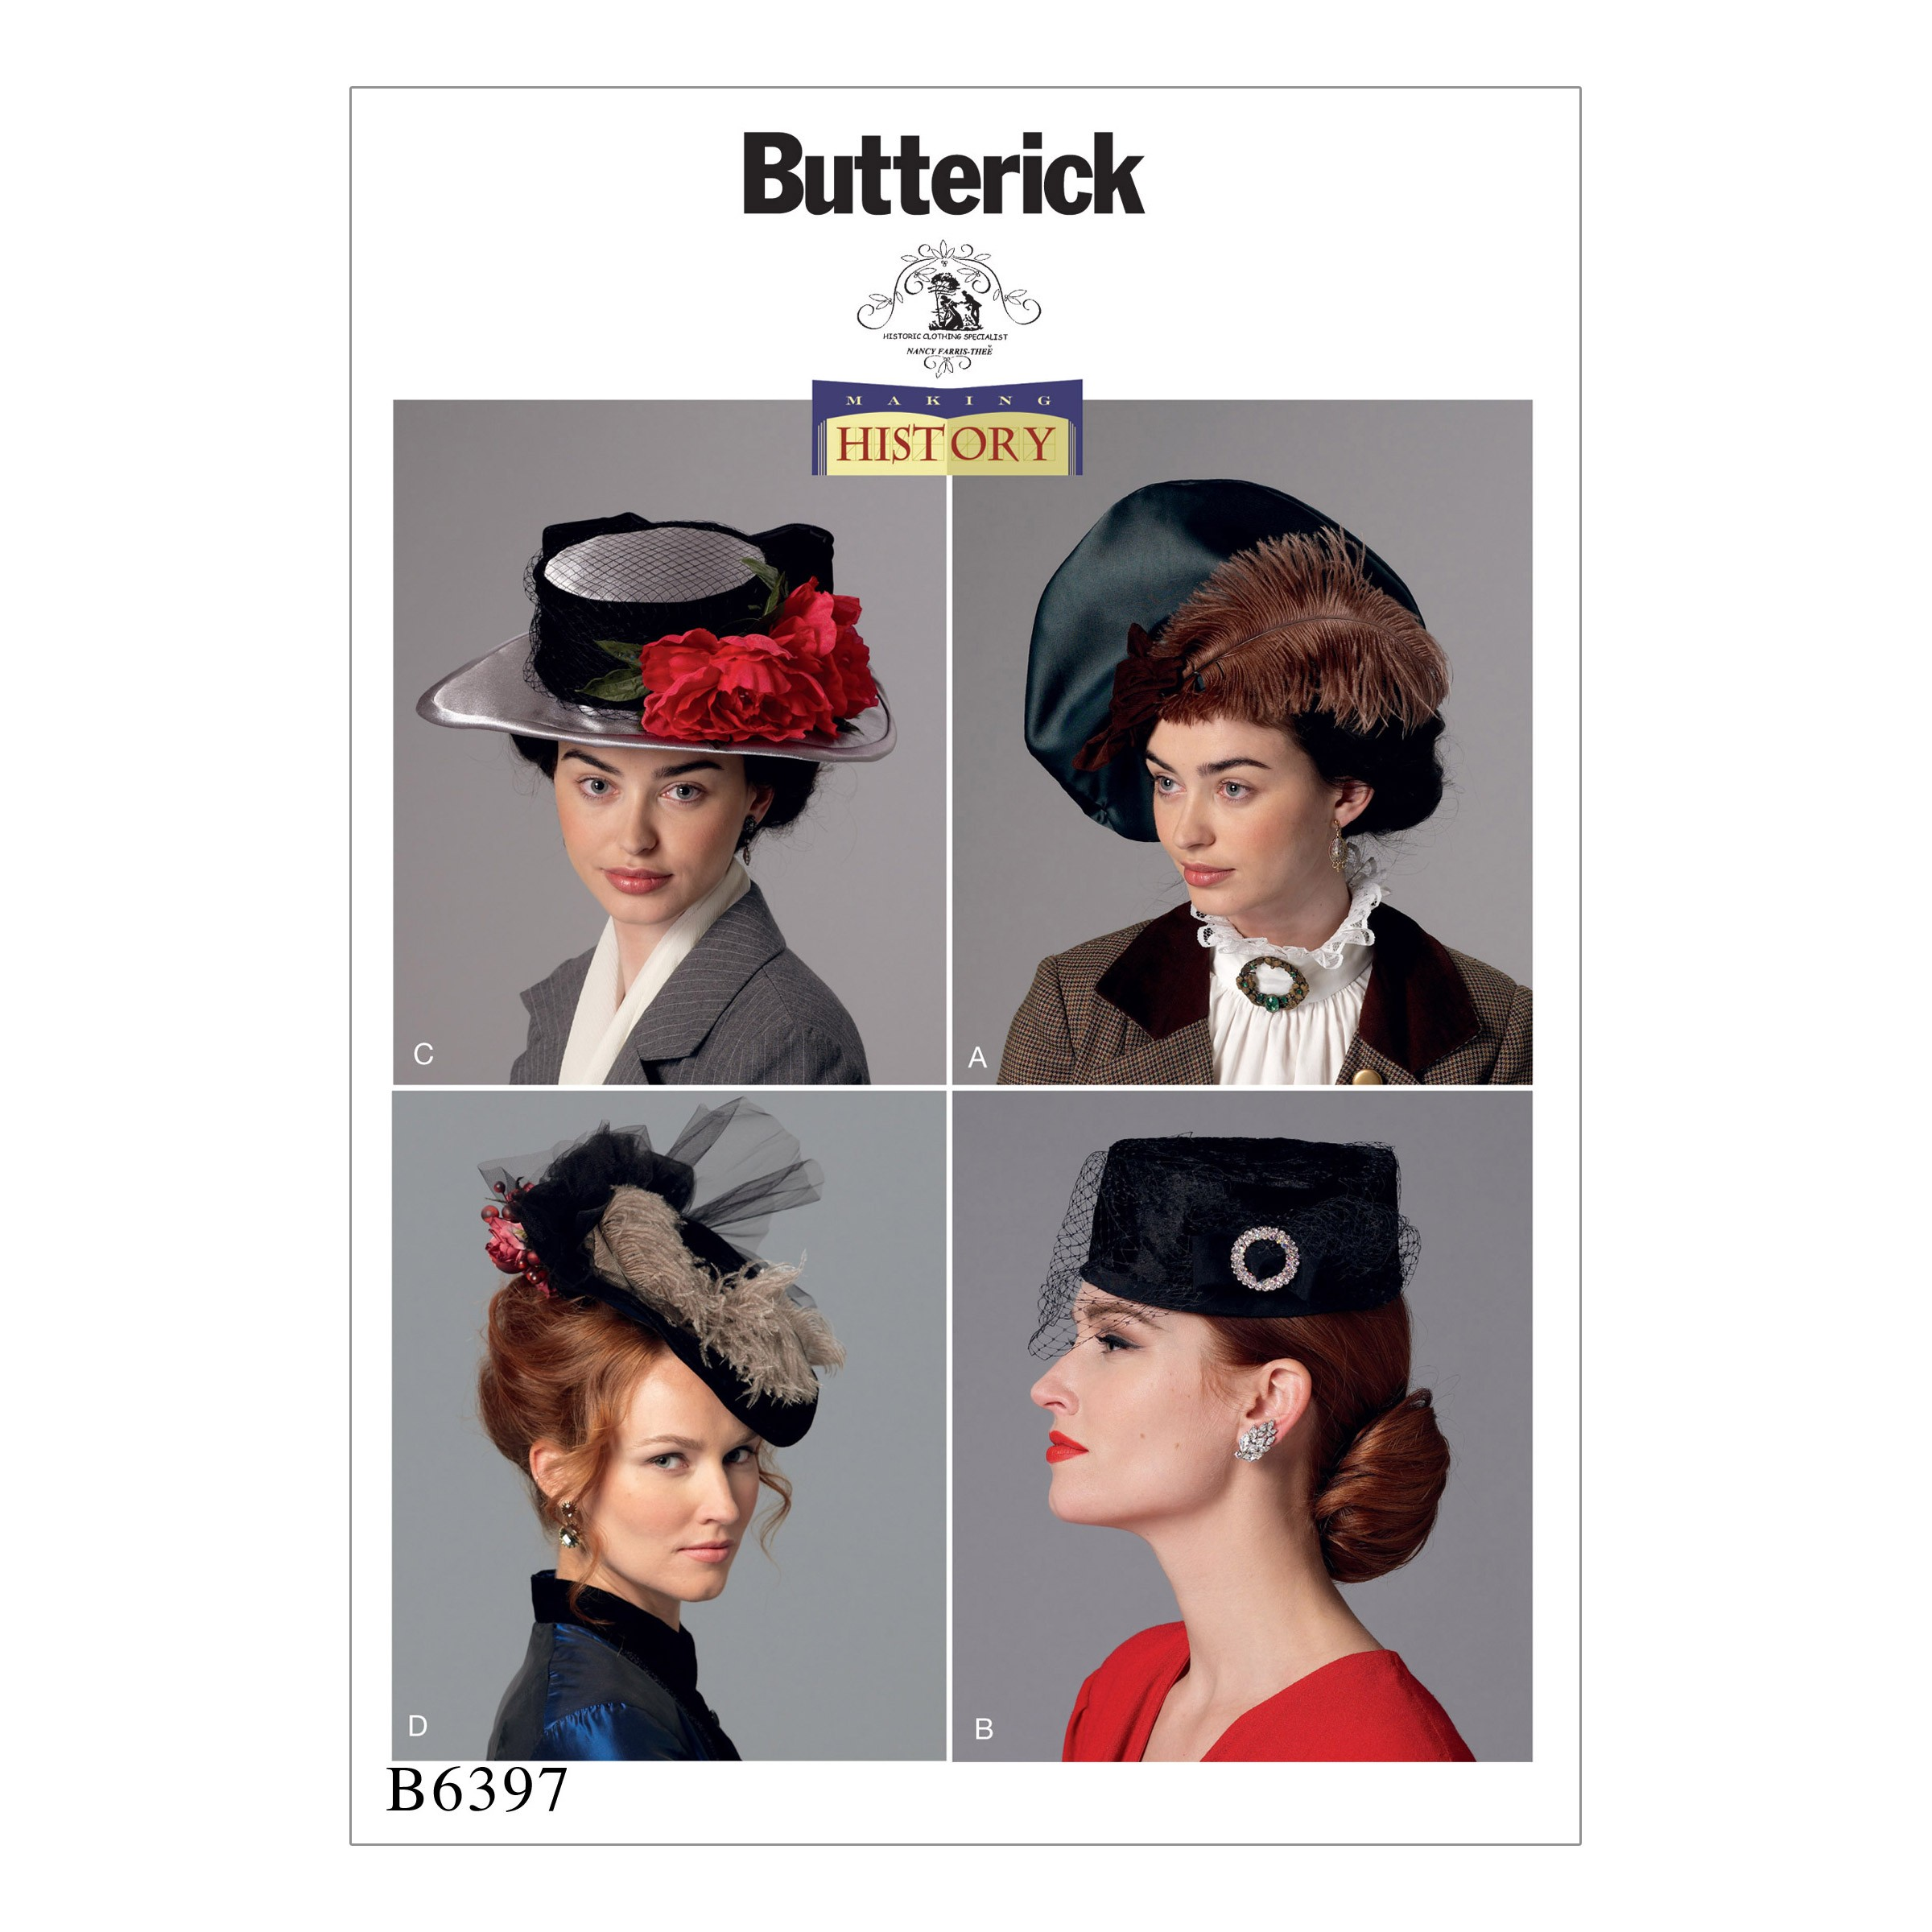 Butterick Sewing Pattern 6671 Misses' Vintage Victorian Costme Hat 4 Patterns